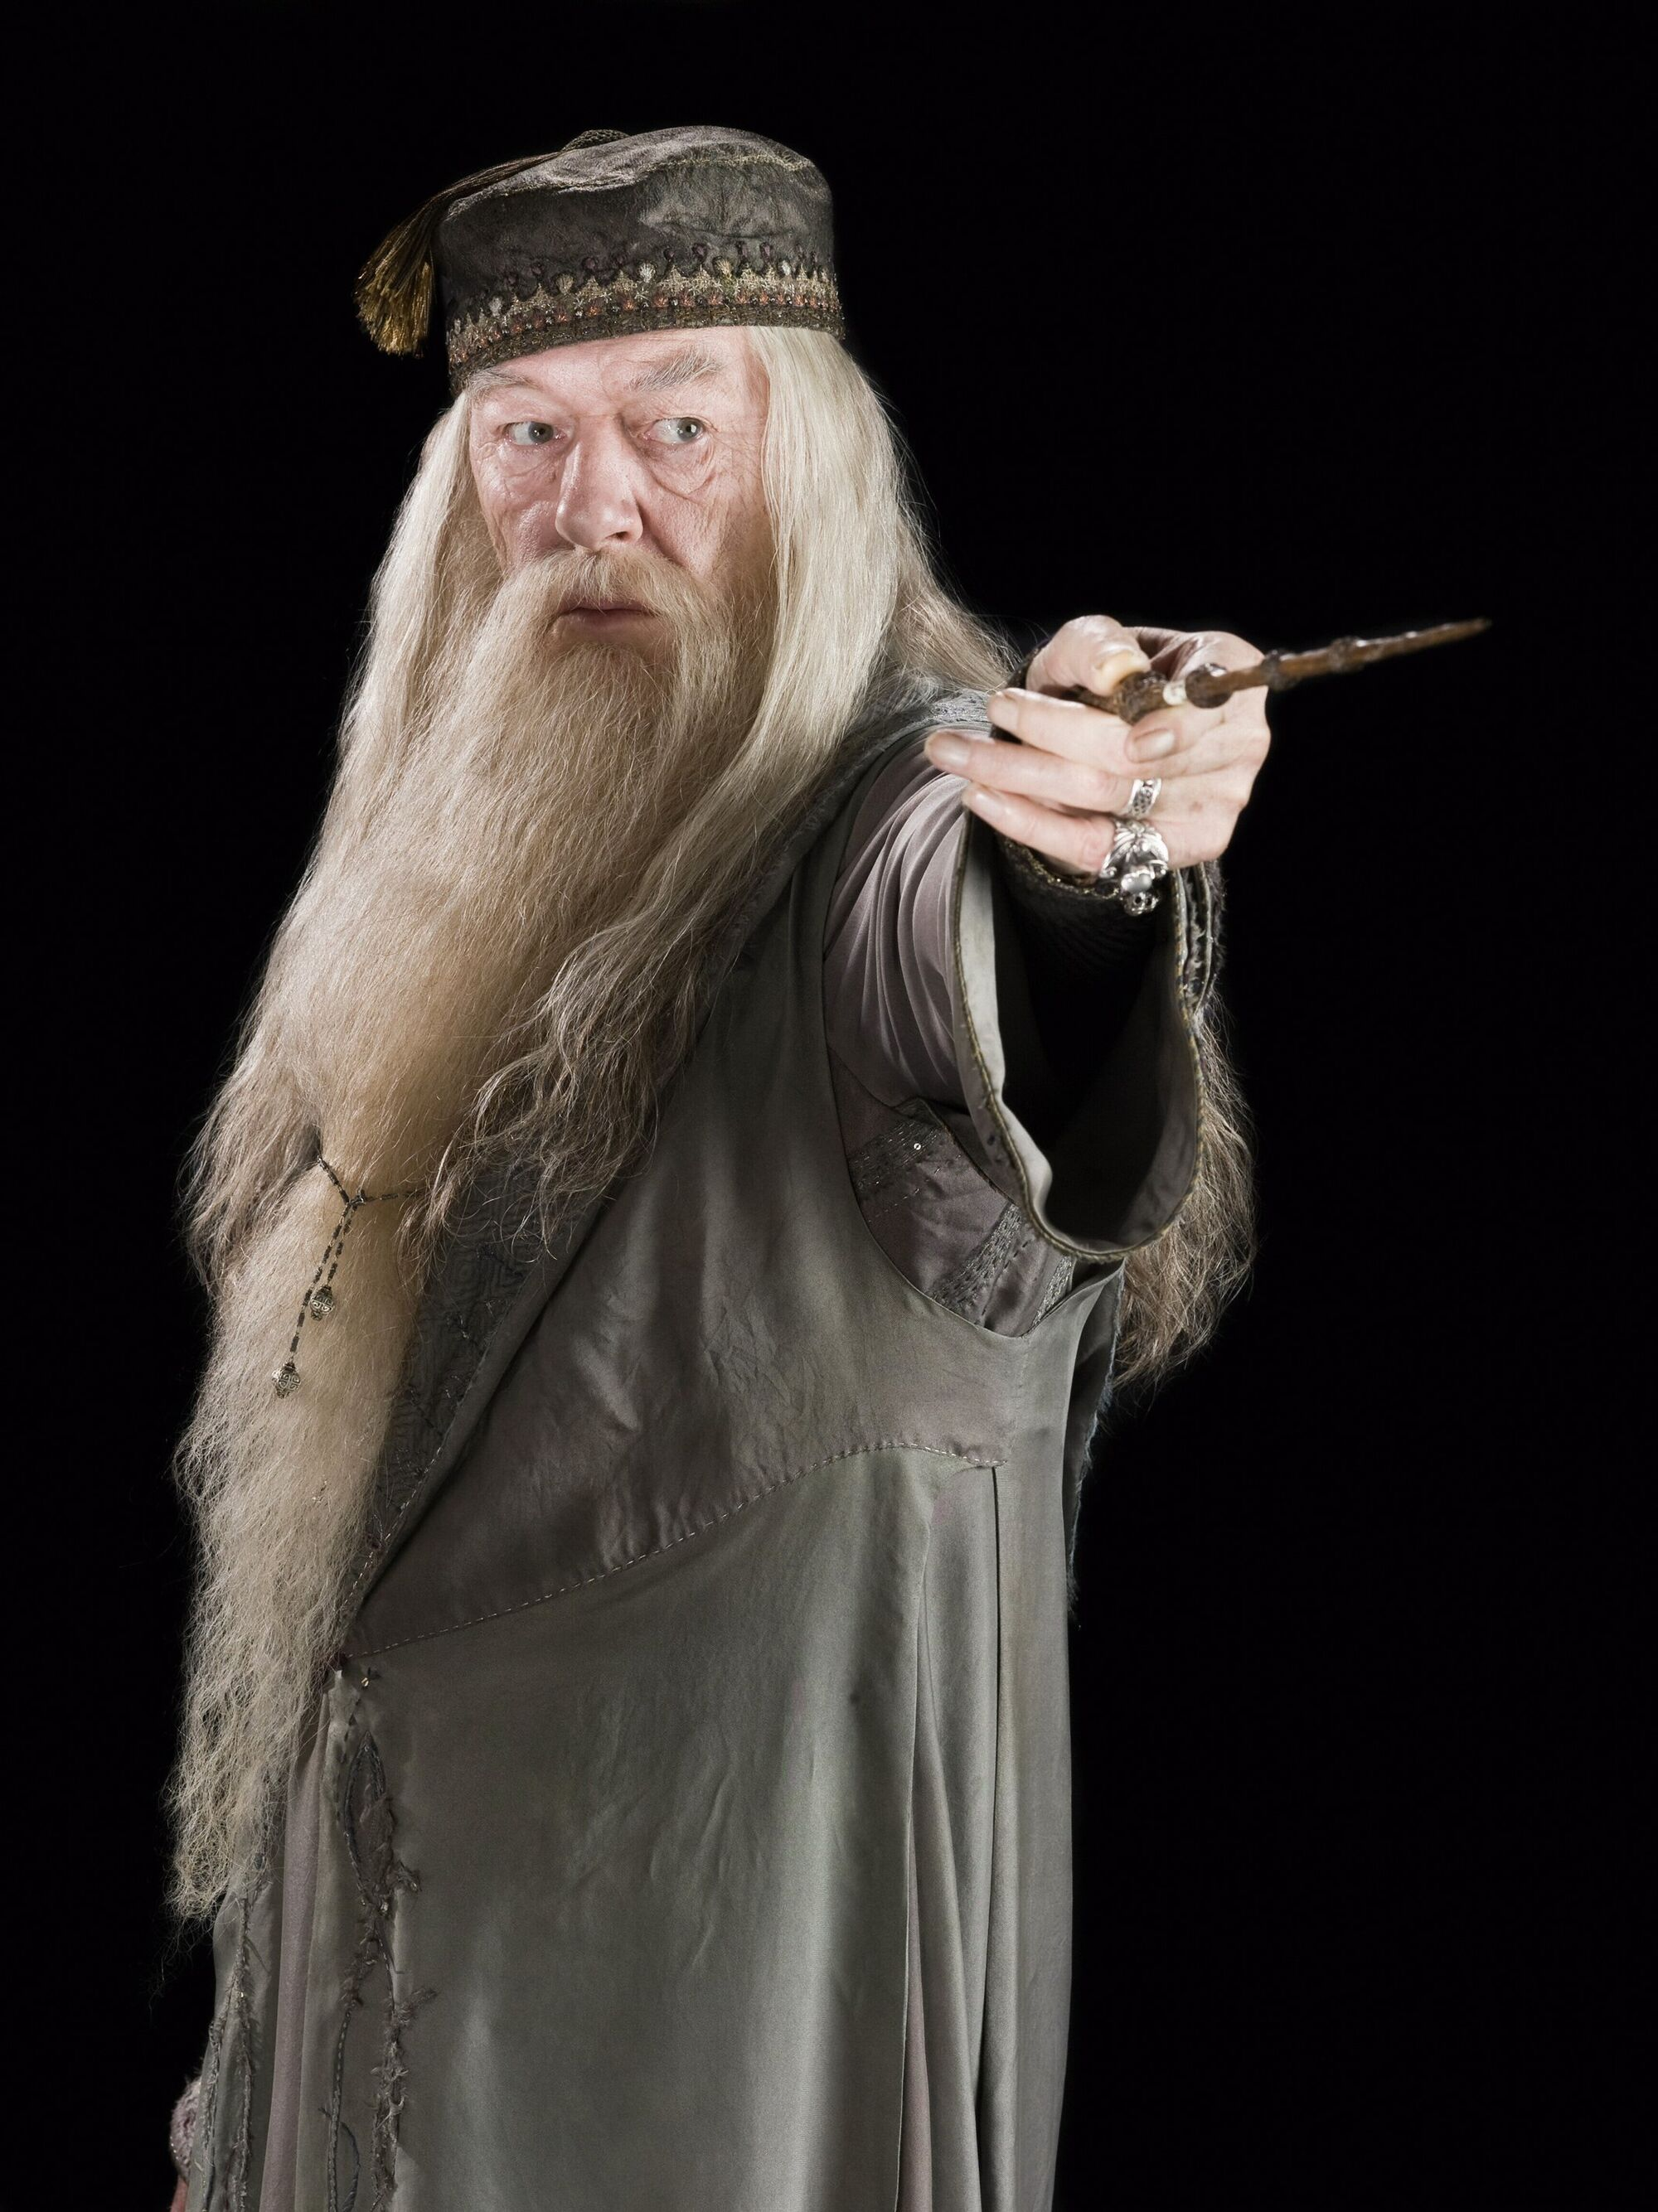 Albus Dumbledore | Harry Potter Wiki | FANDOM powered by Wikia